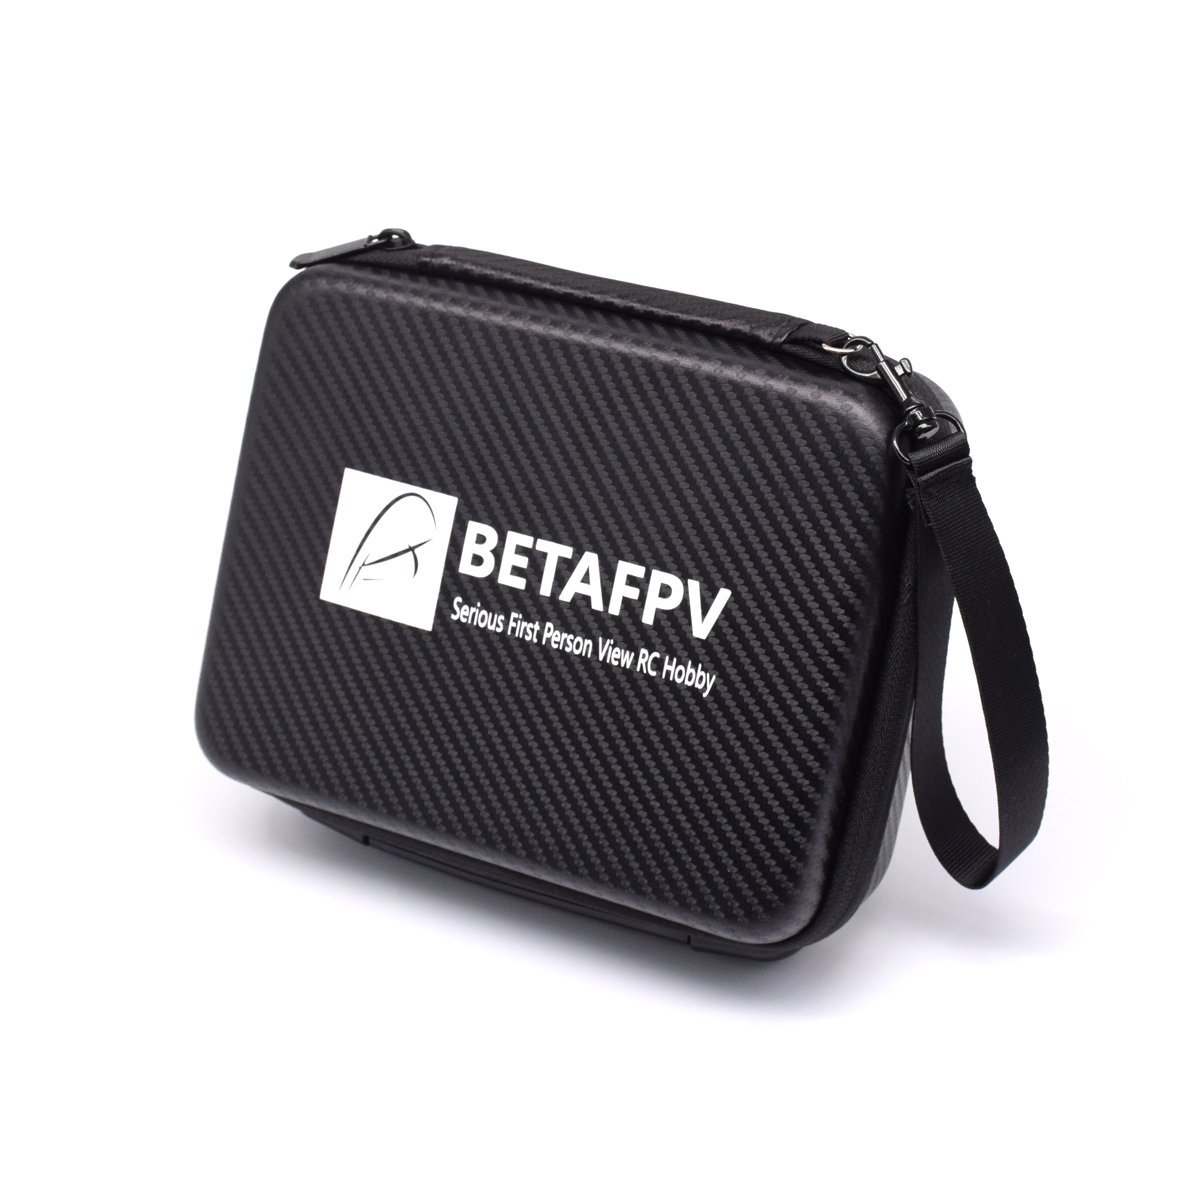 BETAFPV Backpack Carrying Case Blade Inductrix Storage Box with Foam Liner for Tiny Whoop Eachine E010 etc usb 80 key keyboard w pu leather case for 7 tablet pc blue